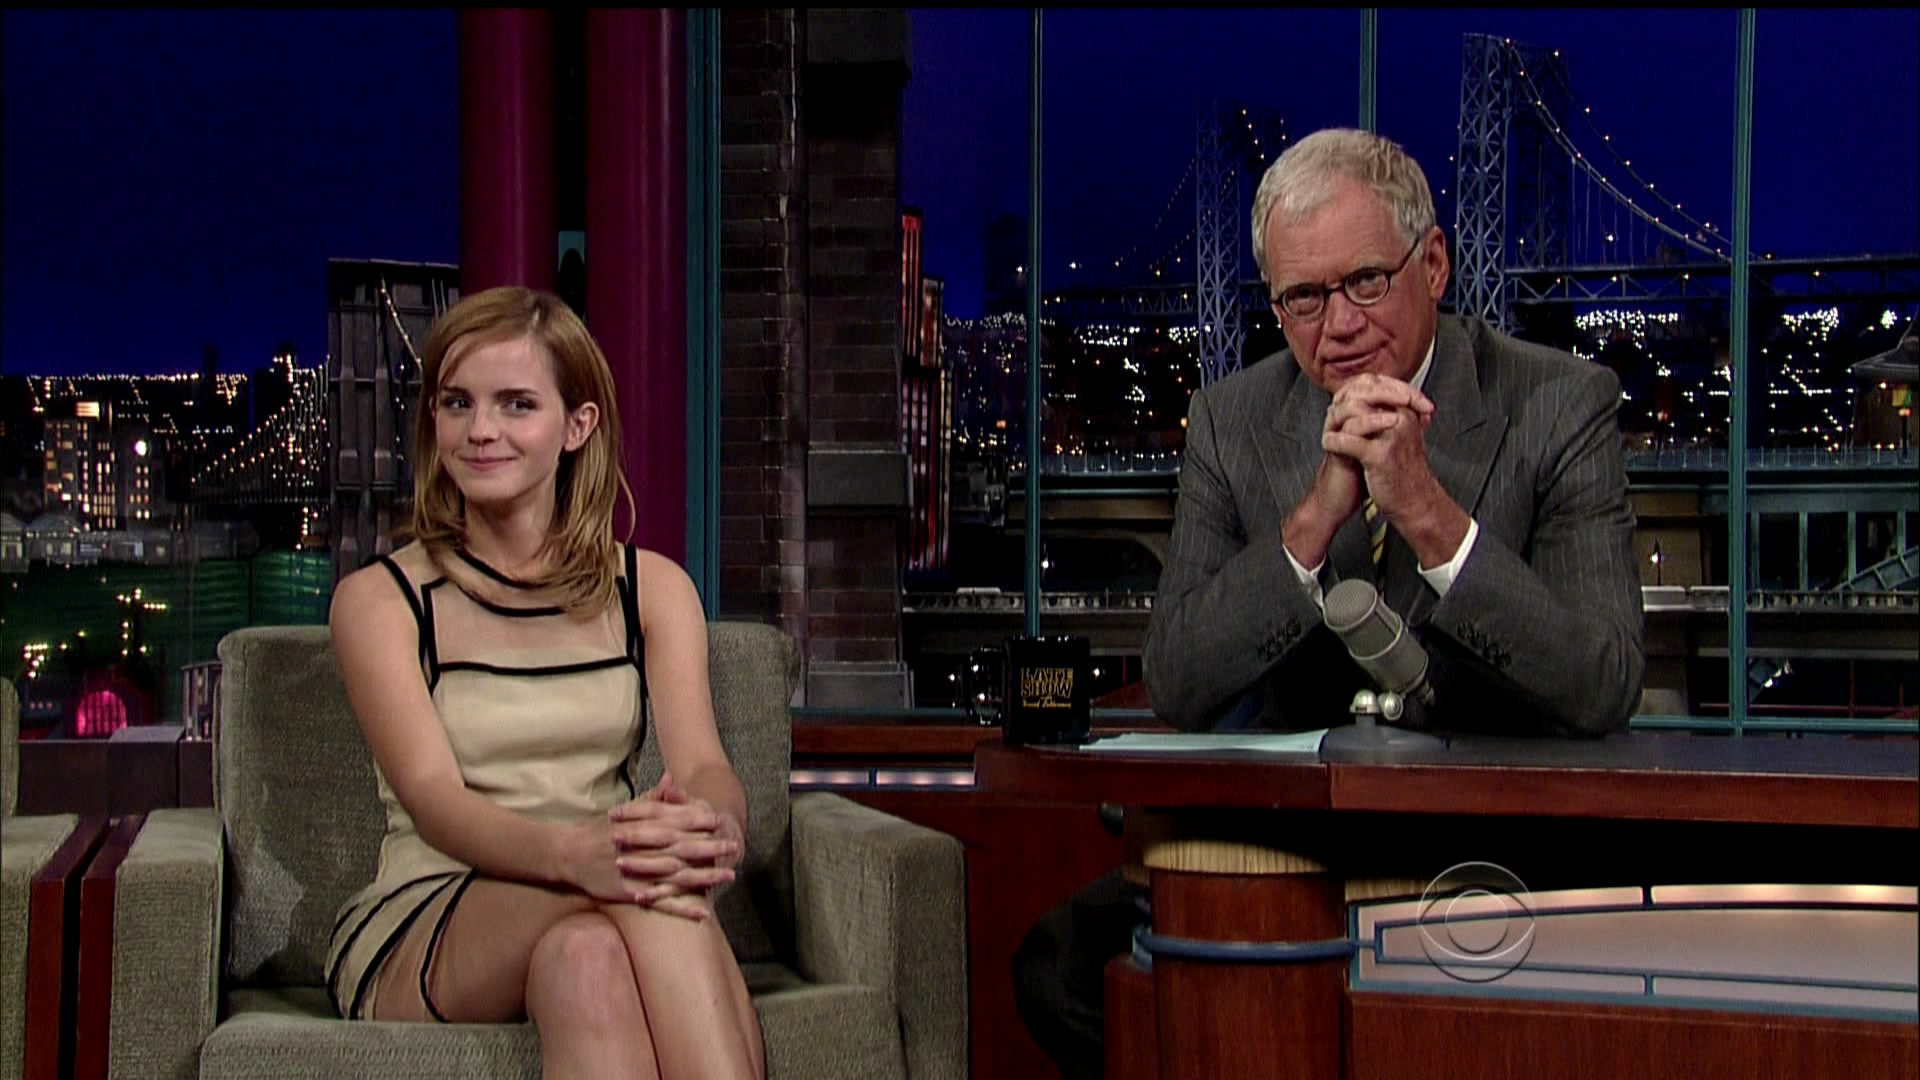 Ding ist Emma watson upskirt david letterman know what